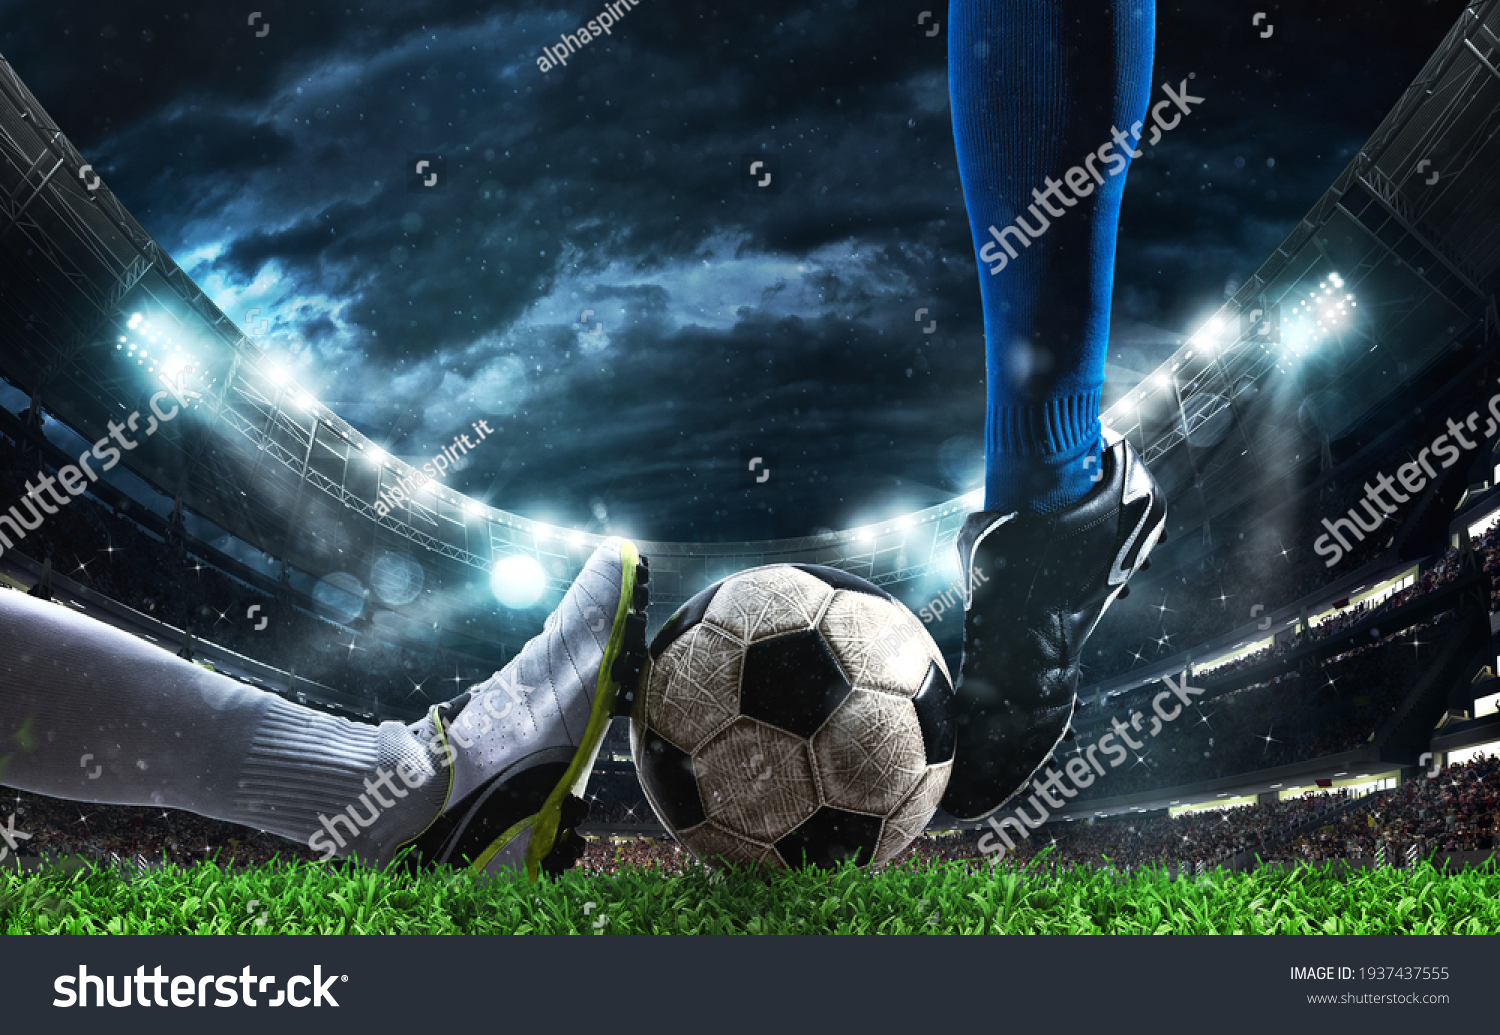 Close up of a football action scene with competing soccer players at the stadium #1937437555